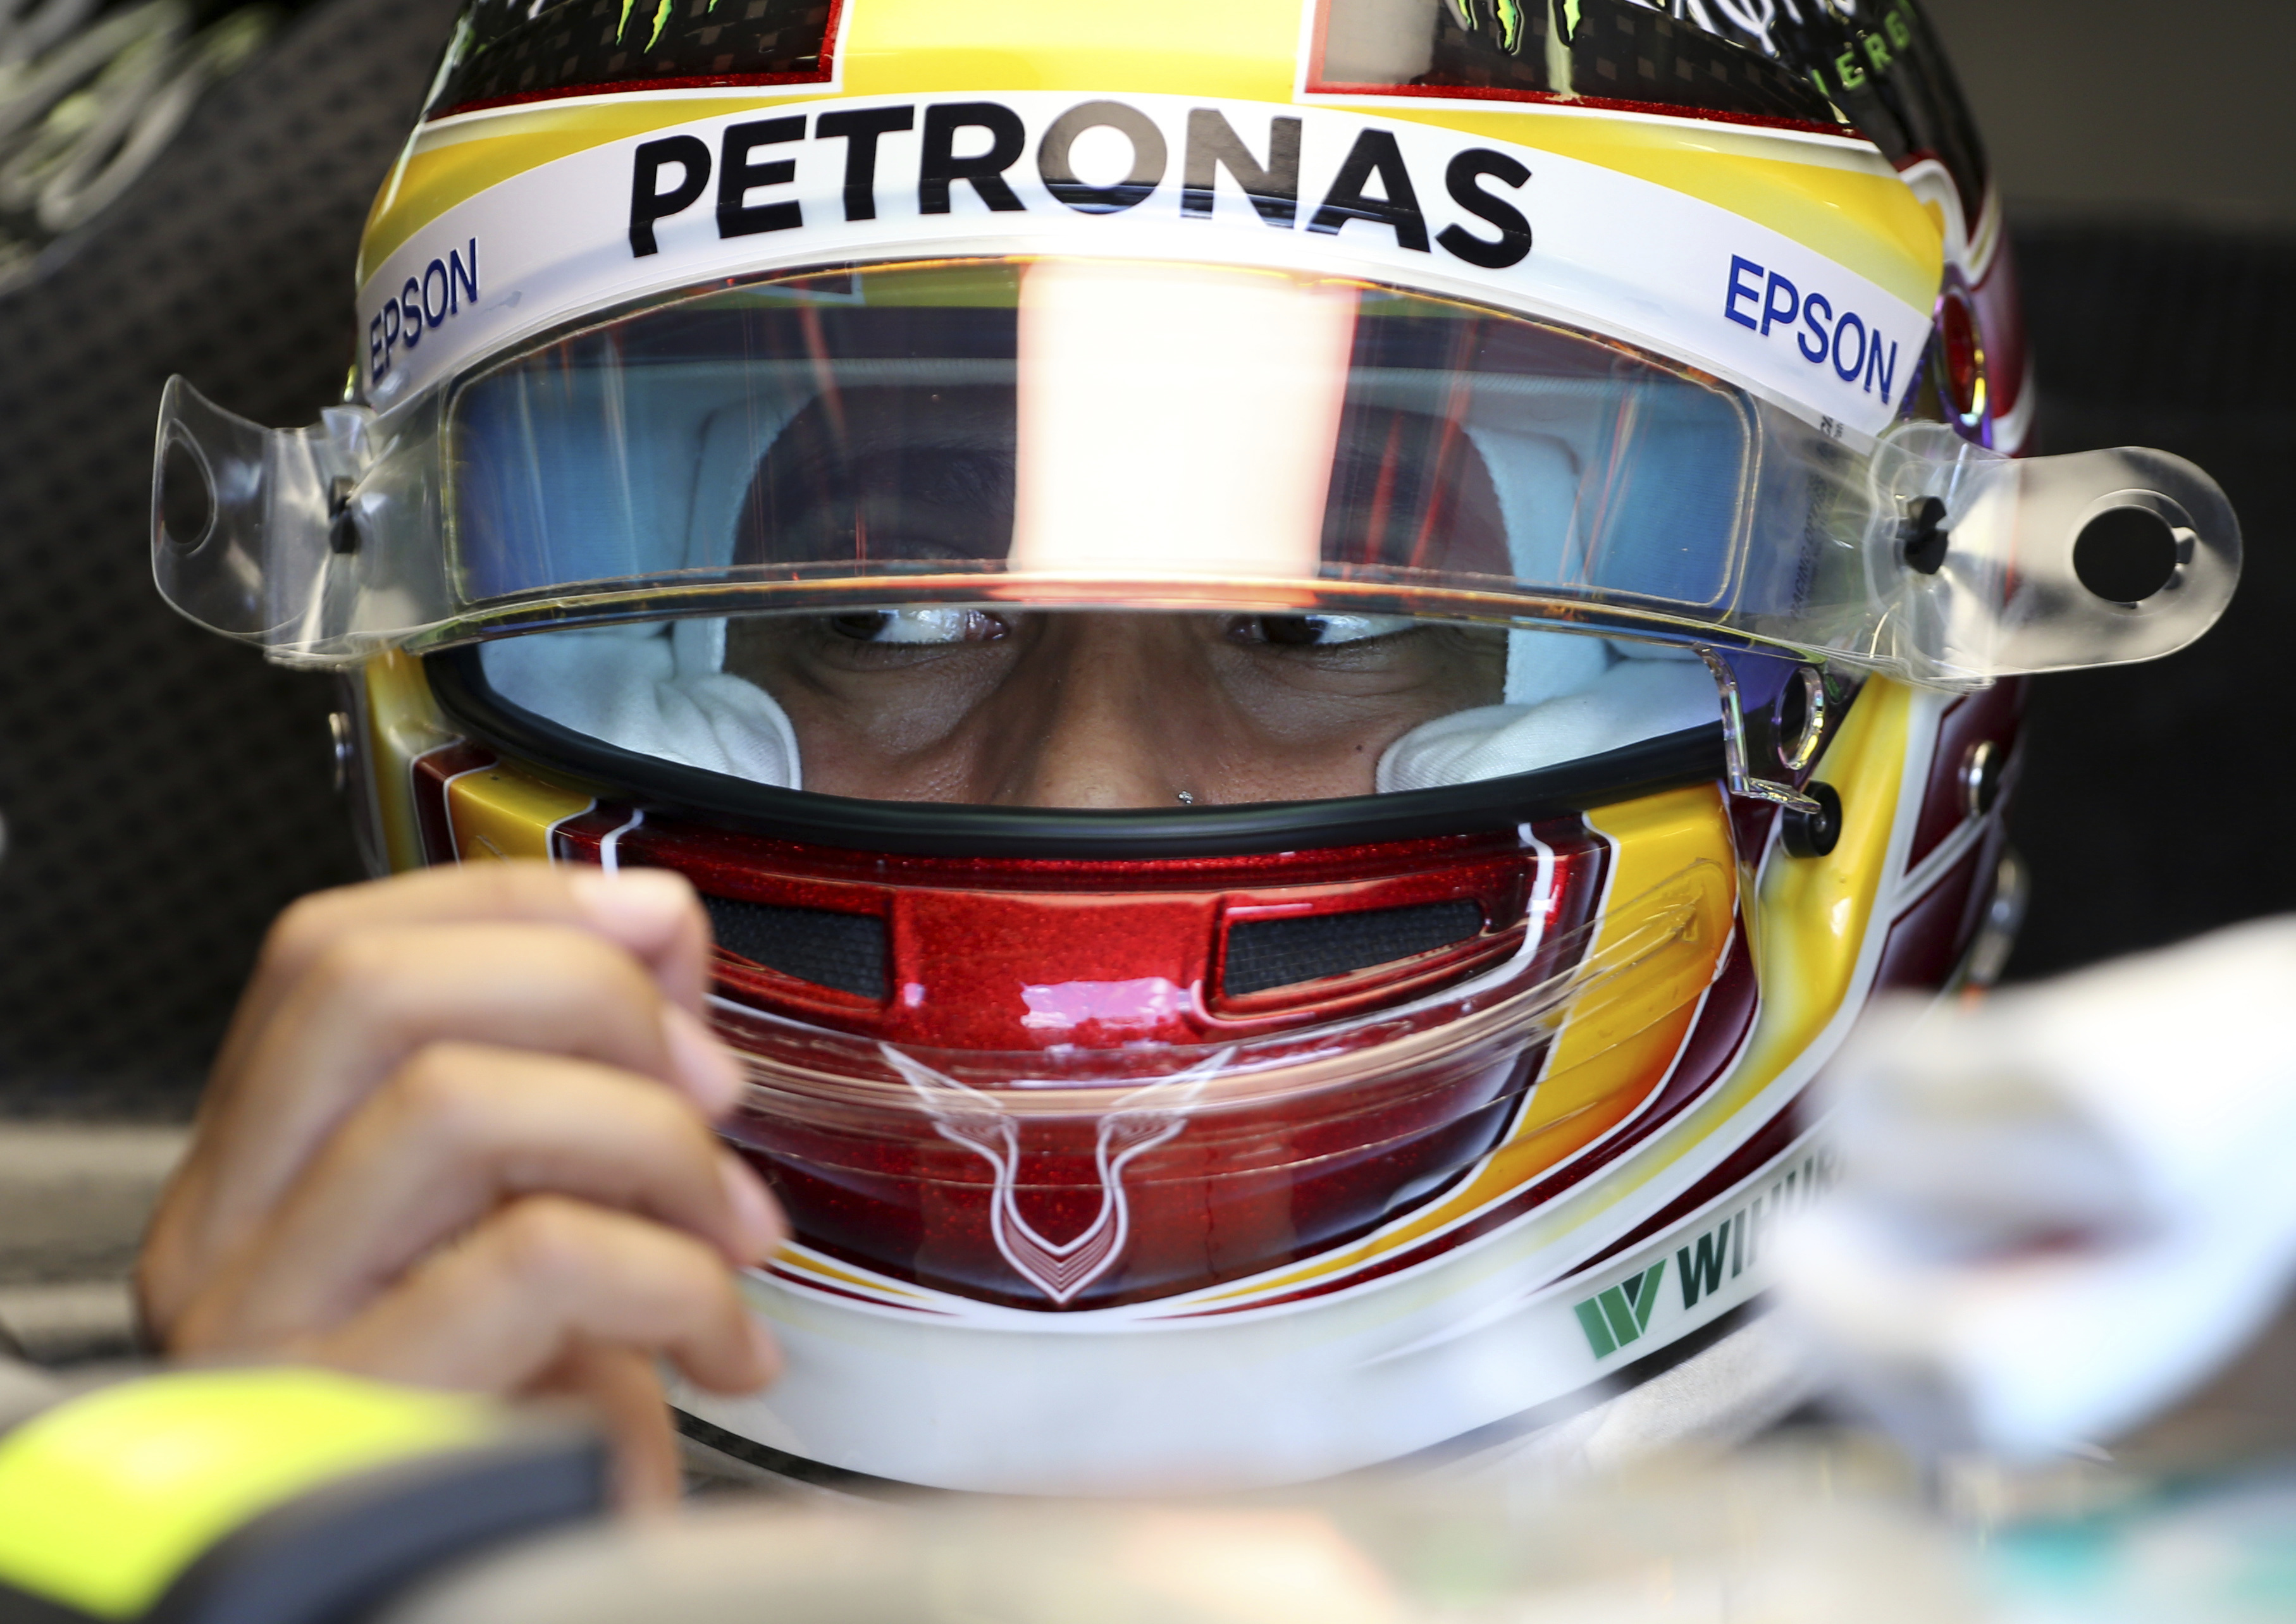 Mercedes driver Lewis Hamilton of Britain waits in his car during the final practice session for the Australian Formula One Grand Prix in Melbourne, Australia, Saturday, March 25. (AP Photo/Rick Rycroft)